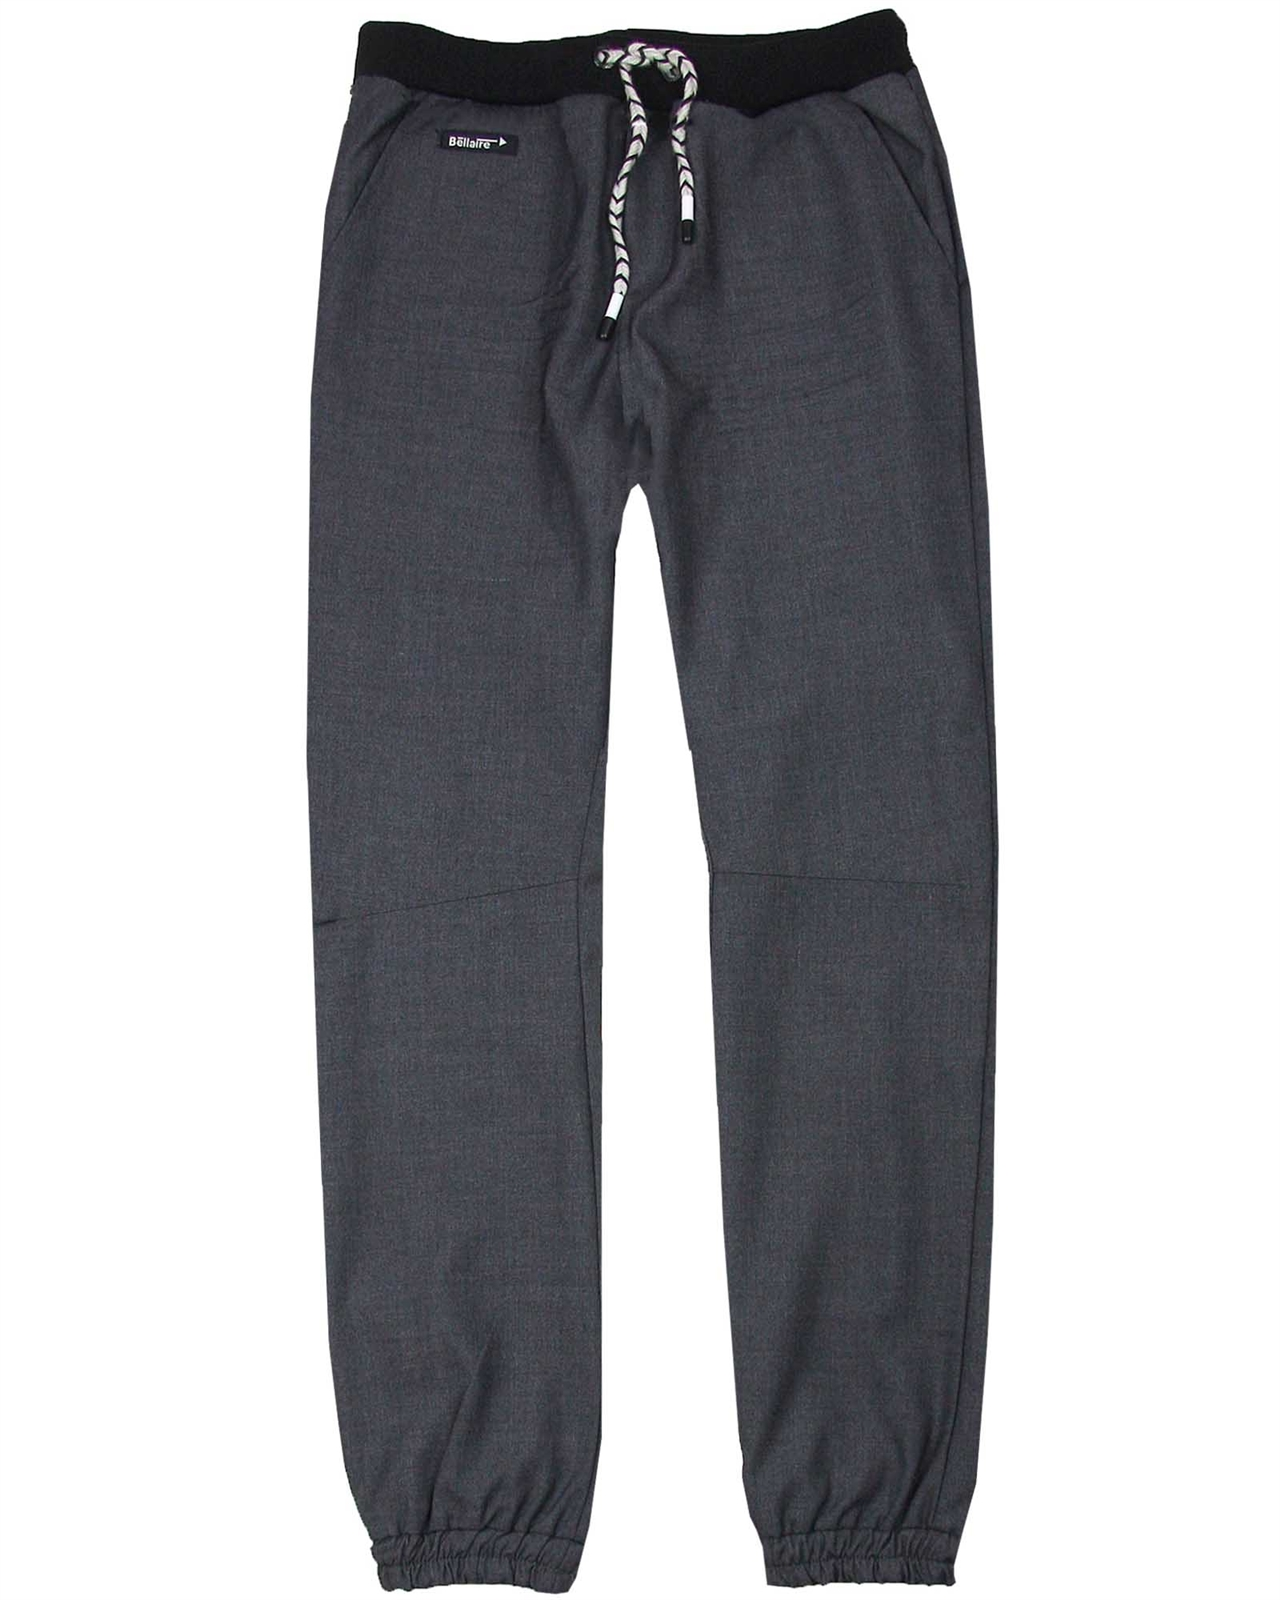 Sizes 10-16 Bellaire Junior Boys Cuffed Chino Pants